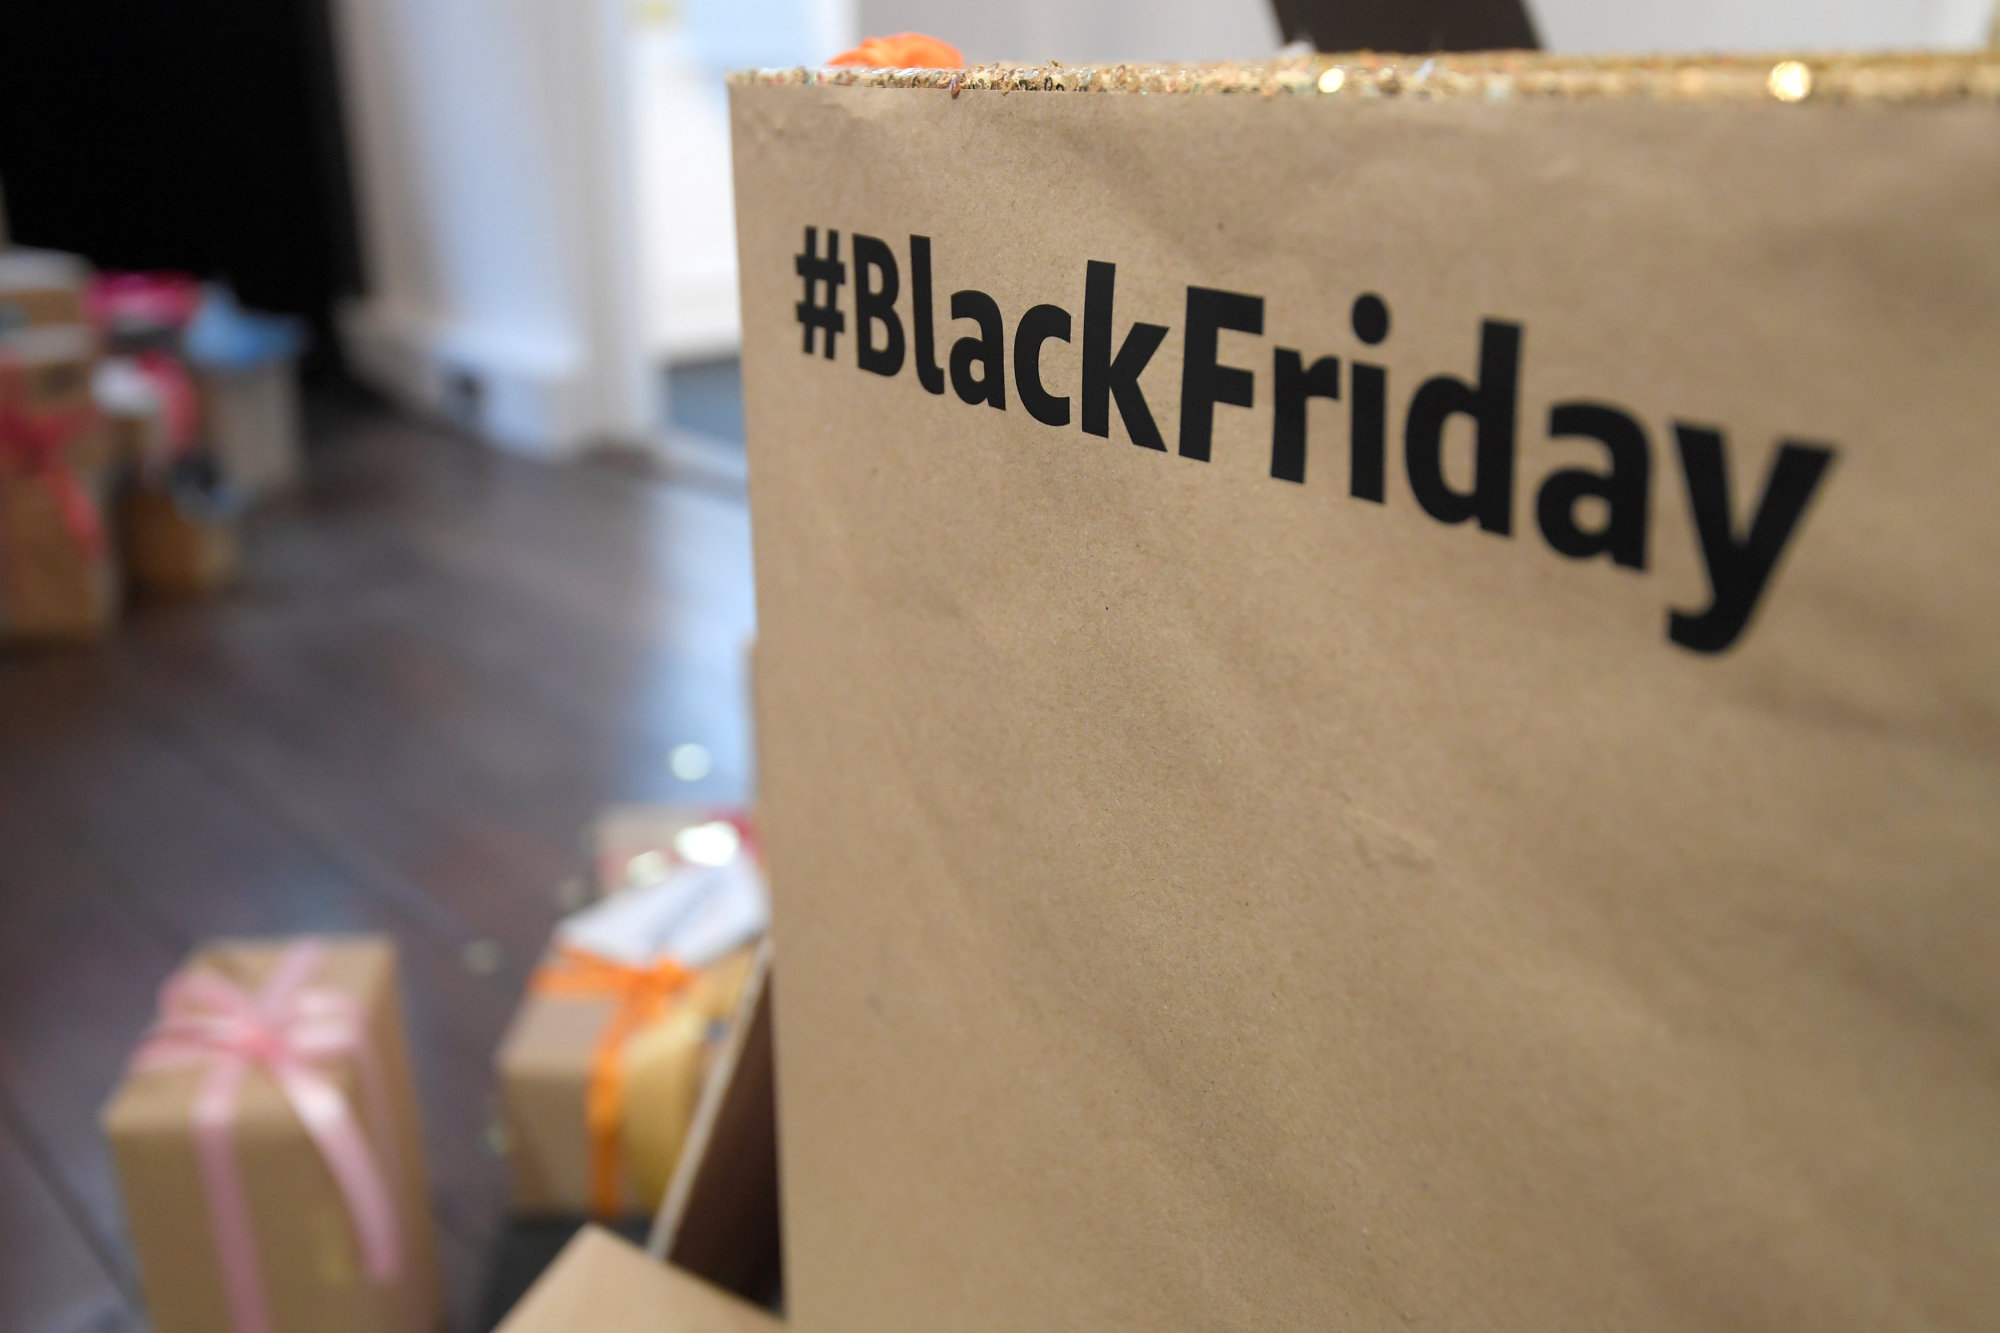 A hashtag is displayed inside Amazon's Black Friday pop-up space in London Tuesday. | REUTERS